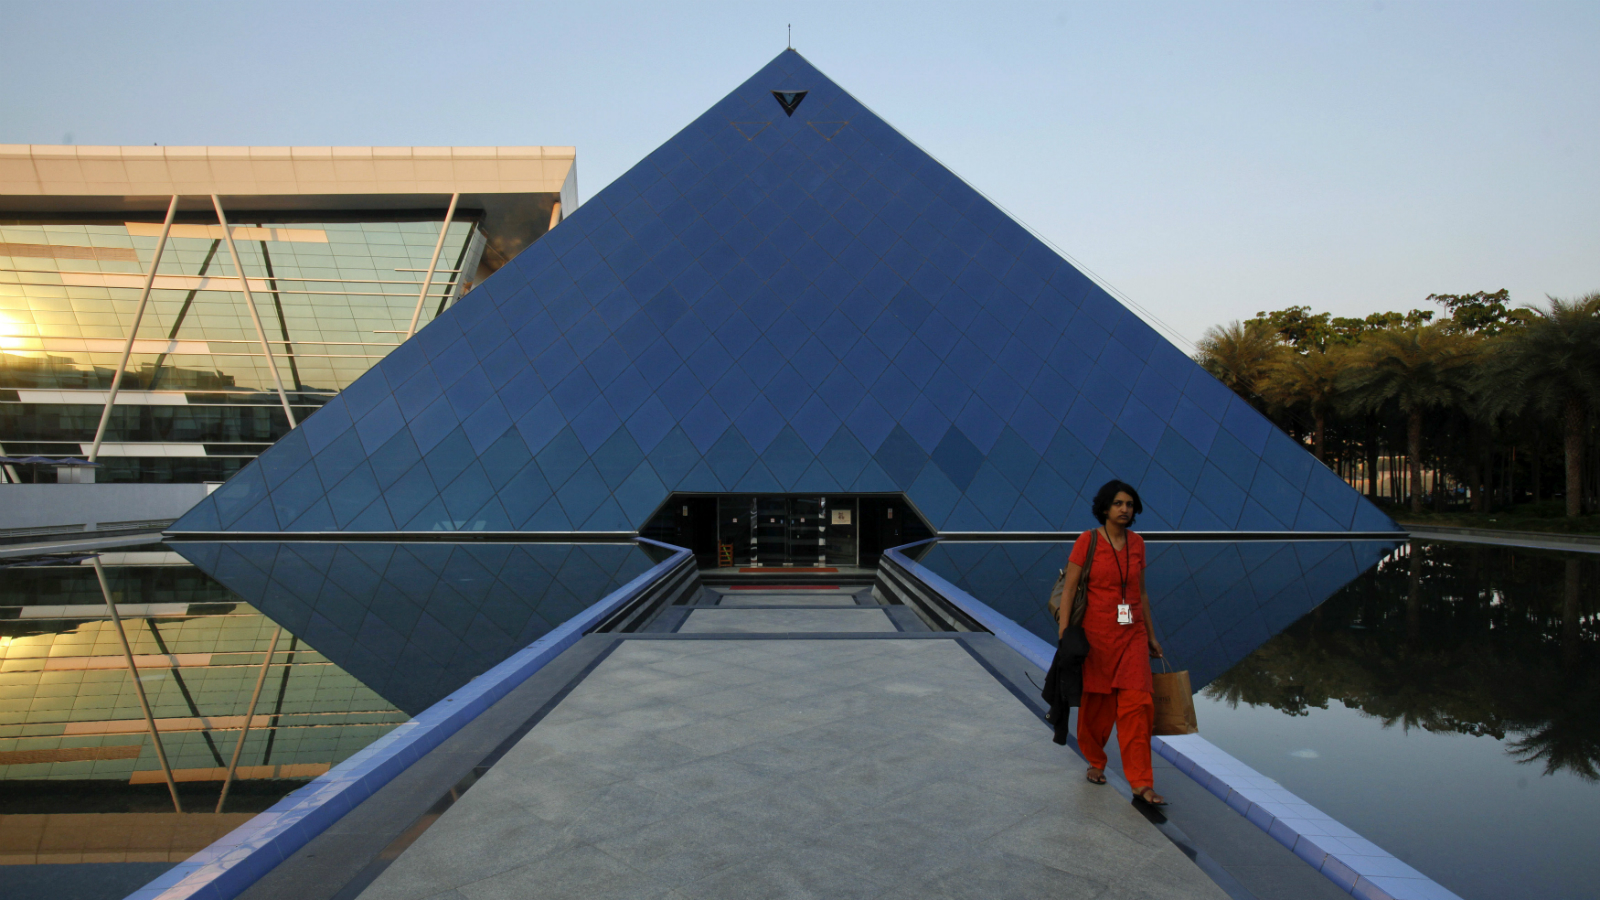 An employee walks out of an iconic pyramid-shaped building made out of glass in the Infosys campus at Electronics City in Bangalore, February 28, 2012. Picture taken on February 28, 2012.